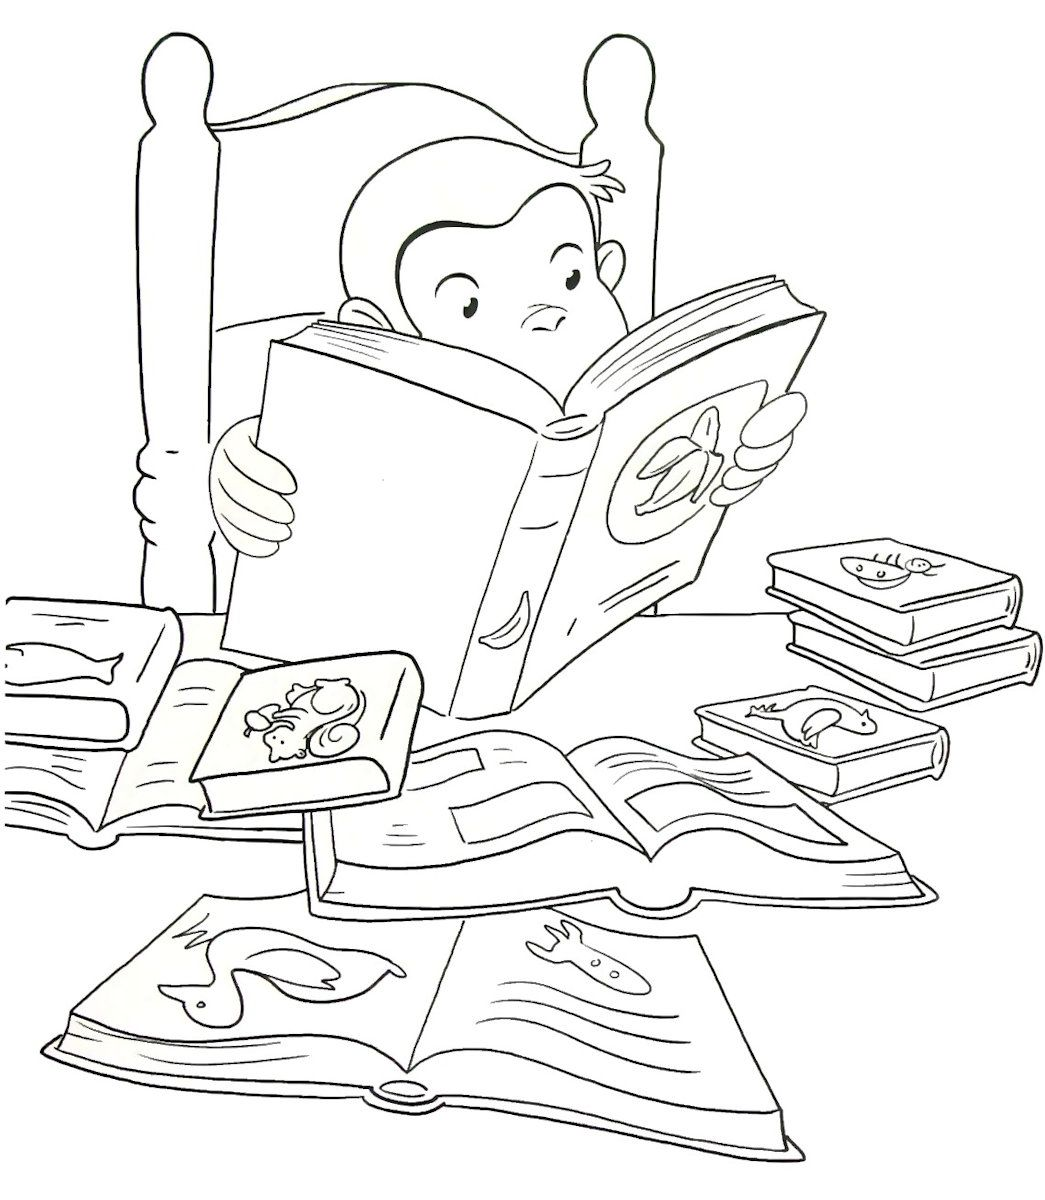 Curious George reading printable coloring book page for kids ...